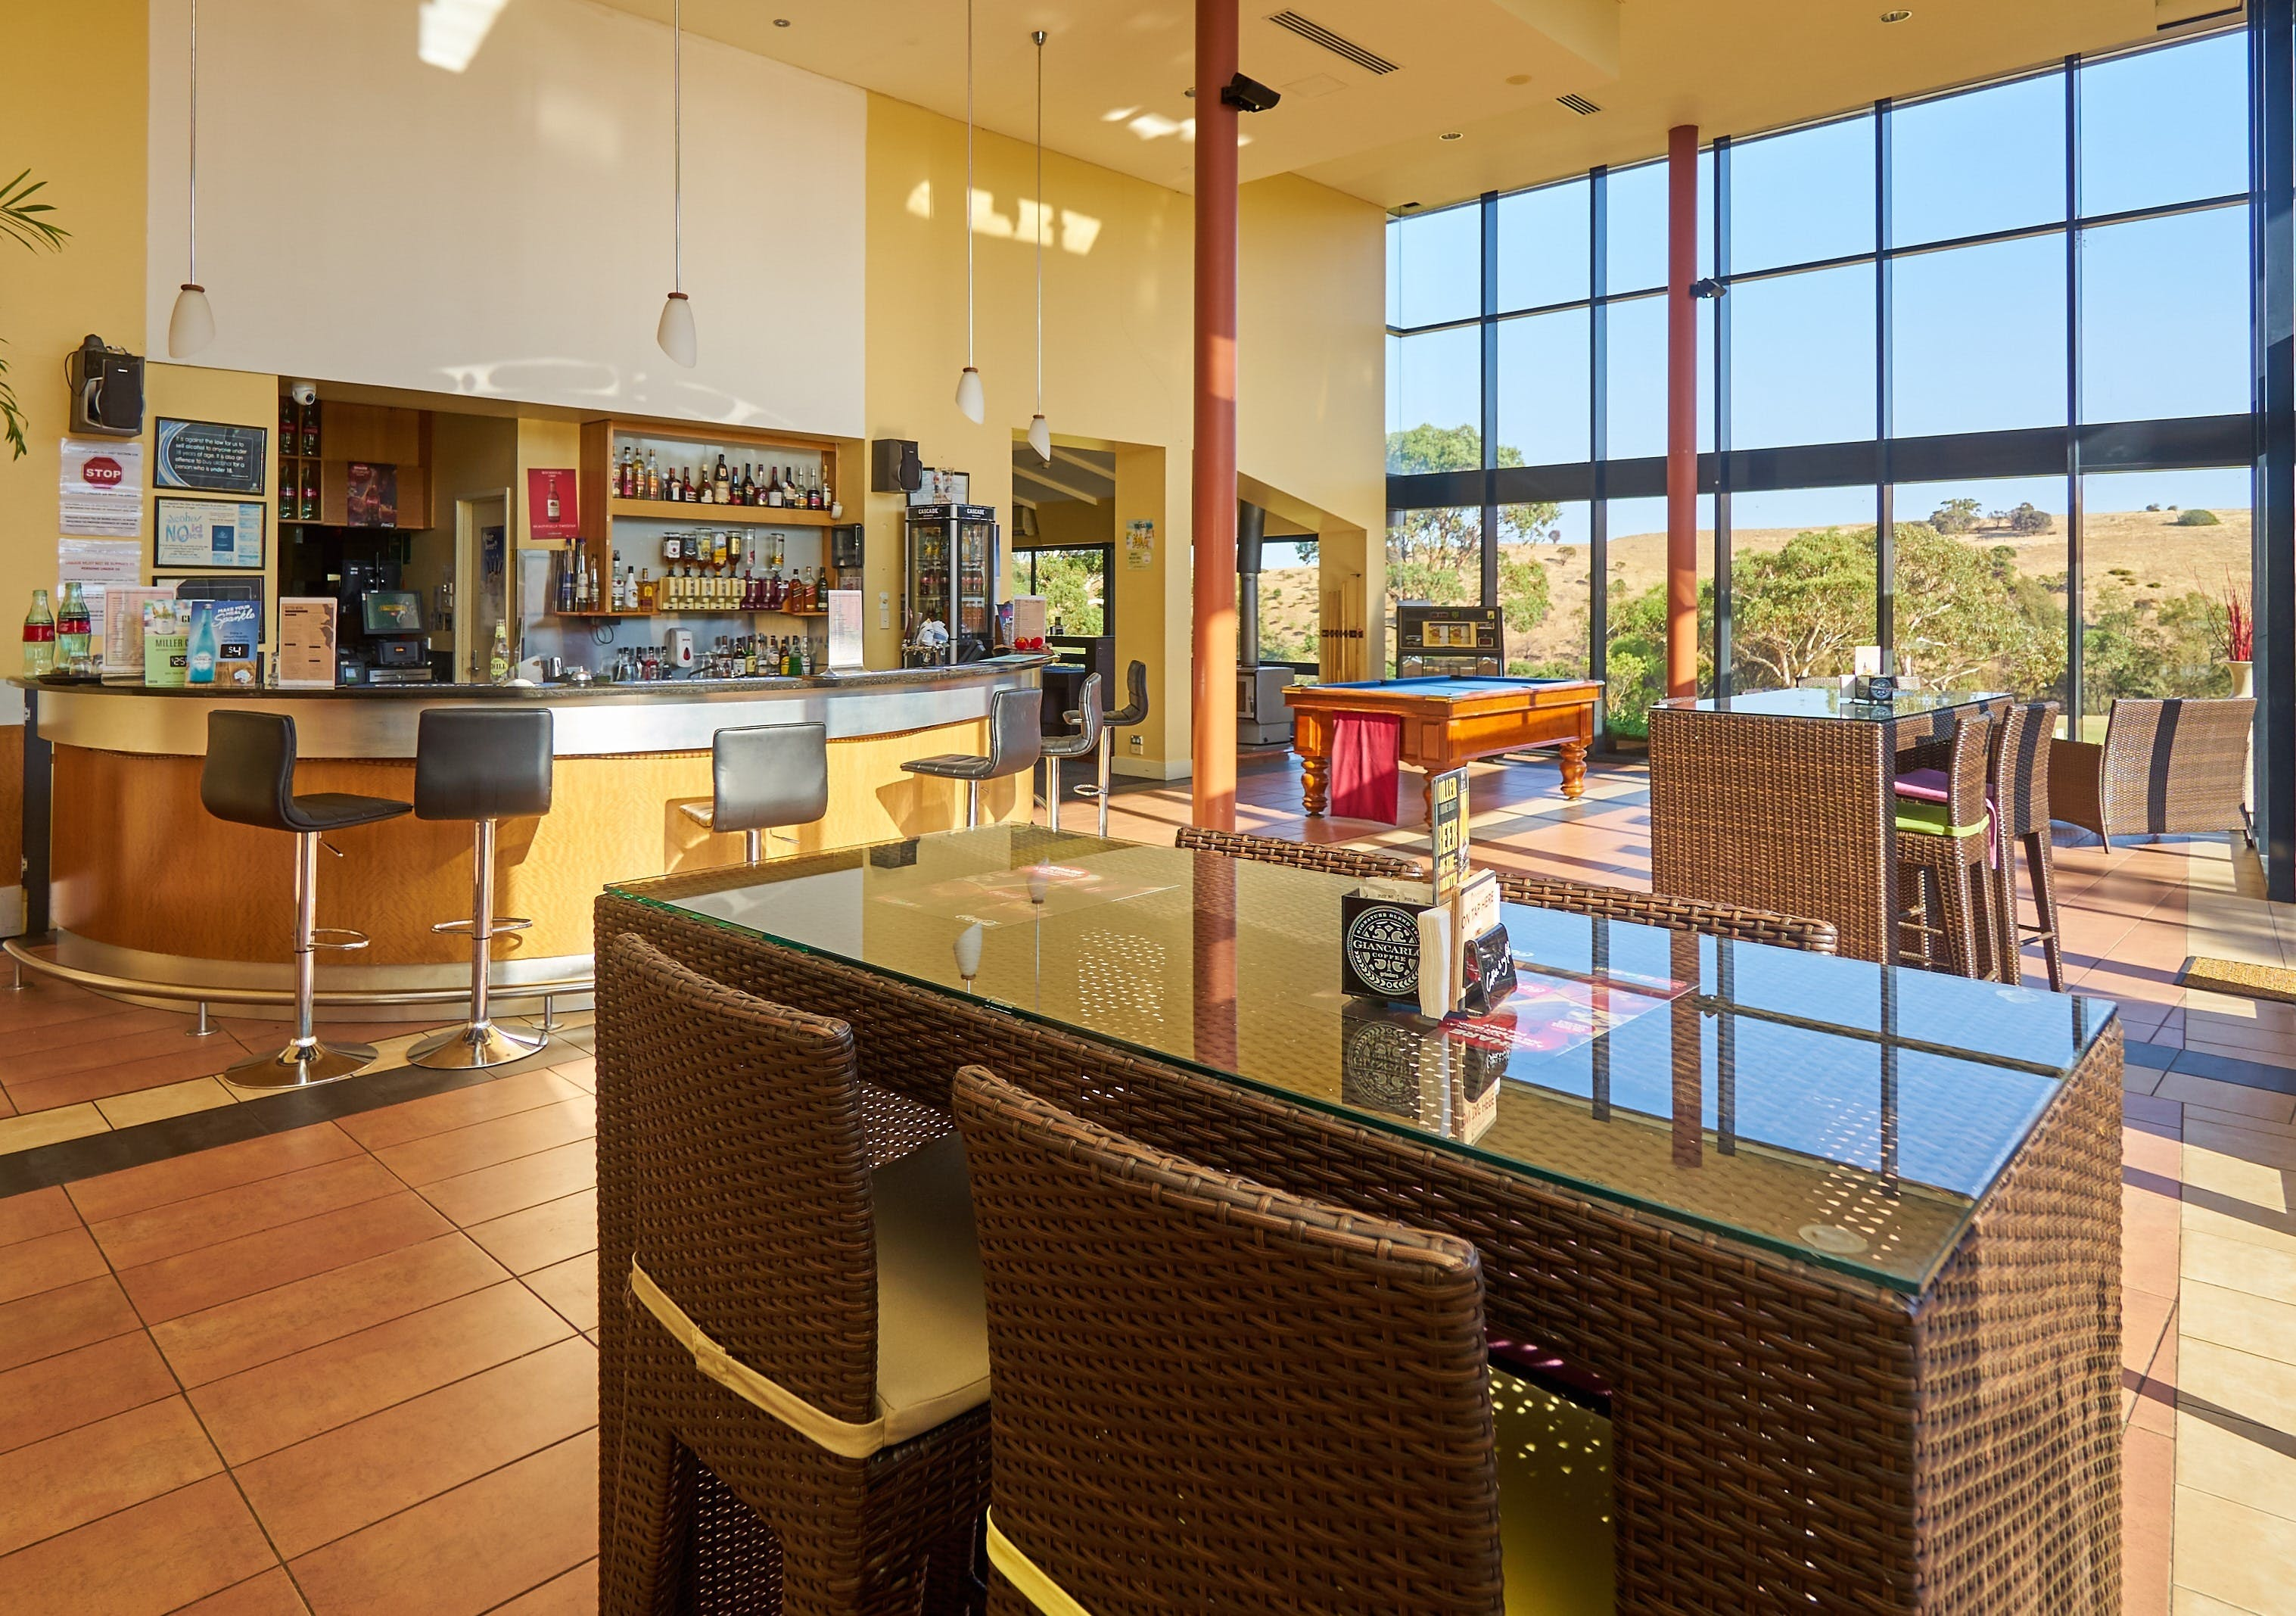 Enjoy a drink at our Boags Bar while enjoying the scenery